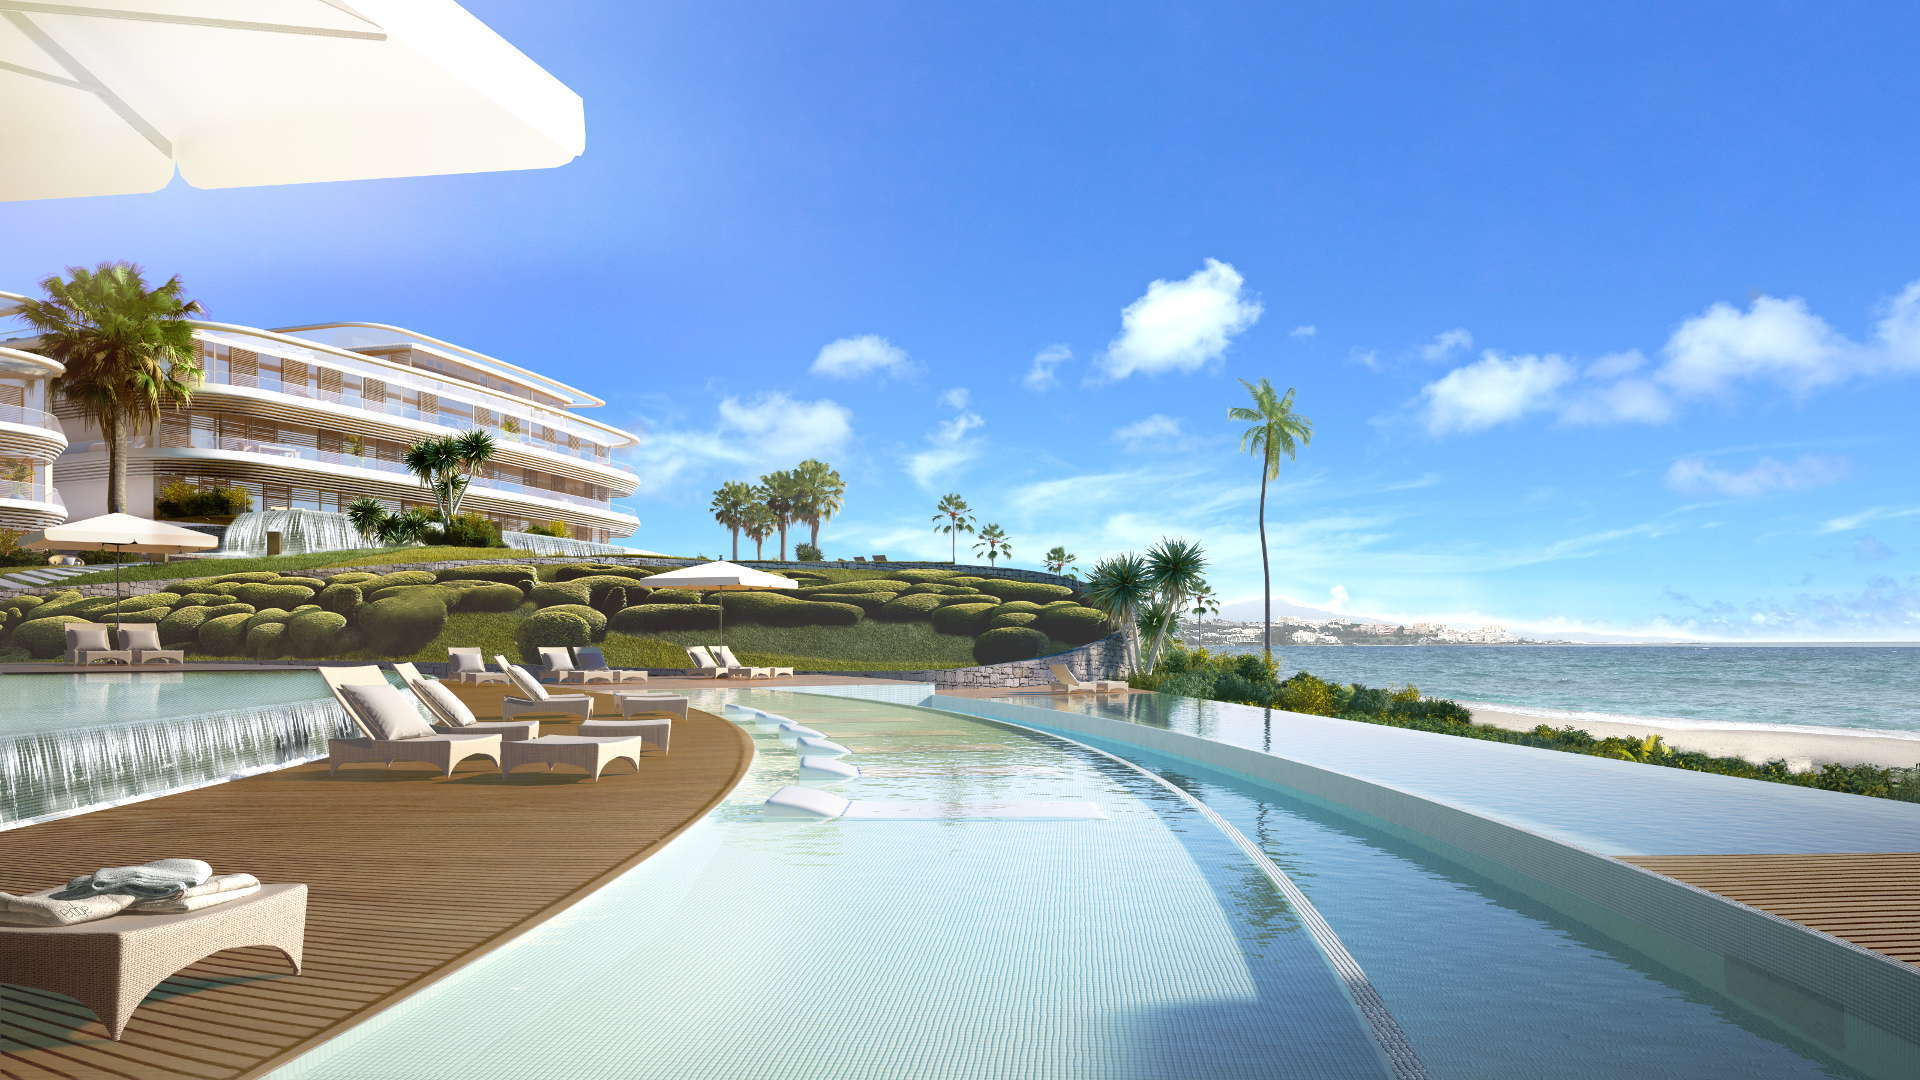 Luxury residential complex on the beach front in Estepona